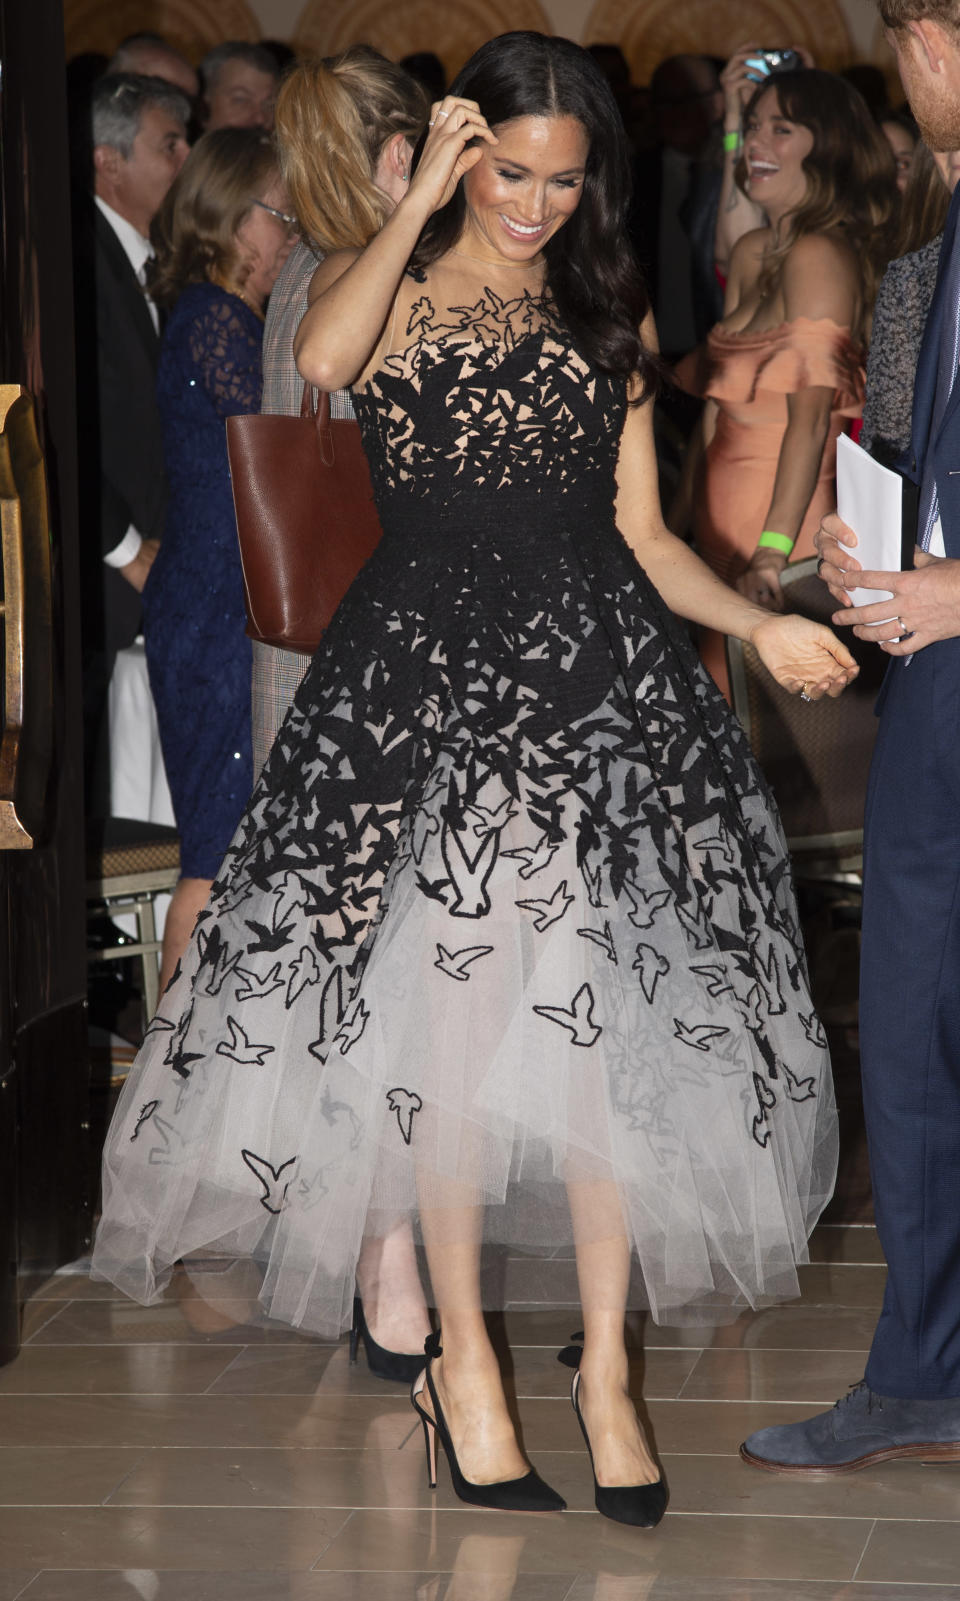 <p>There's no denying that Meghan's Oscar de la Renta dress wins the best fashion moment of the year thanks to its puffed tulle skirt and romantic bird detailing. She finished the ensemble with Hollywood-worthy curls and Tabitha Simmons shoes. <em>[Photo: Getty]</em> </p>